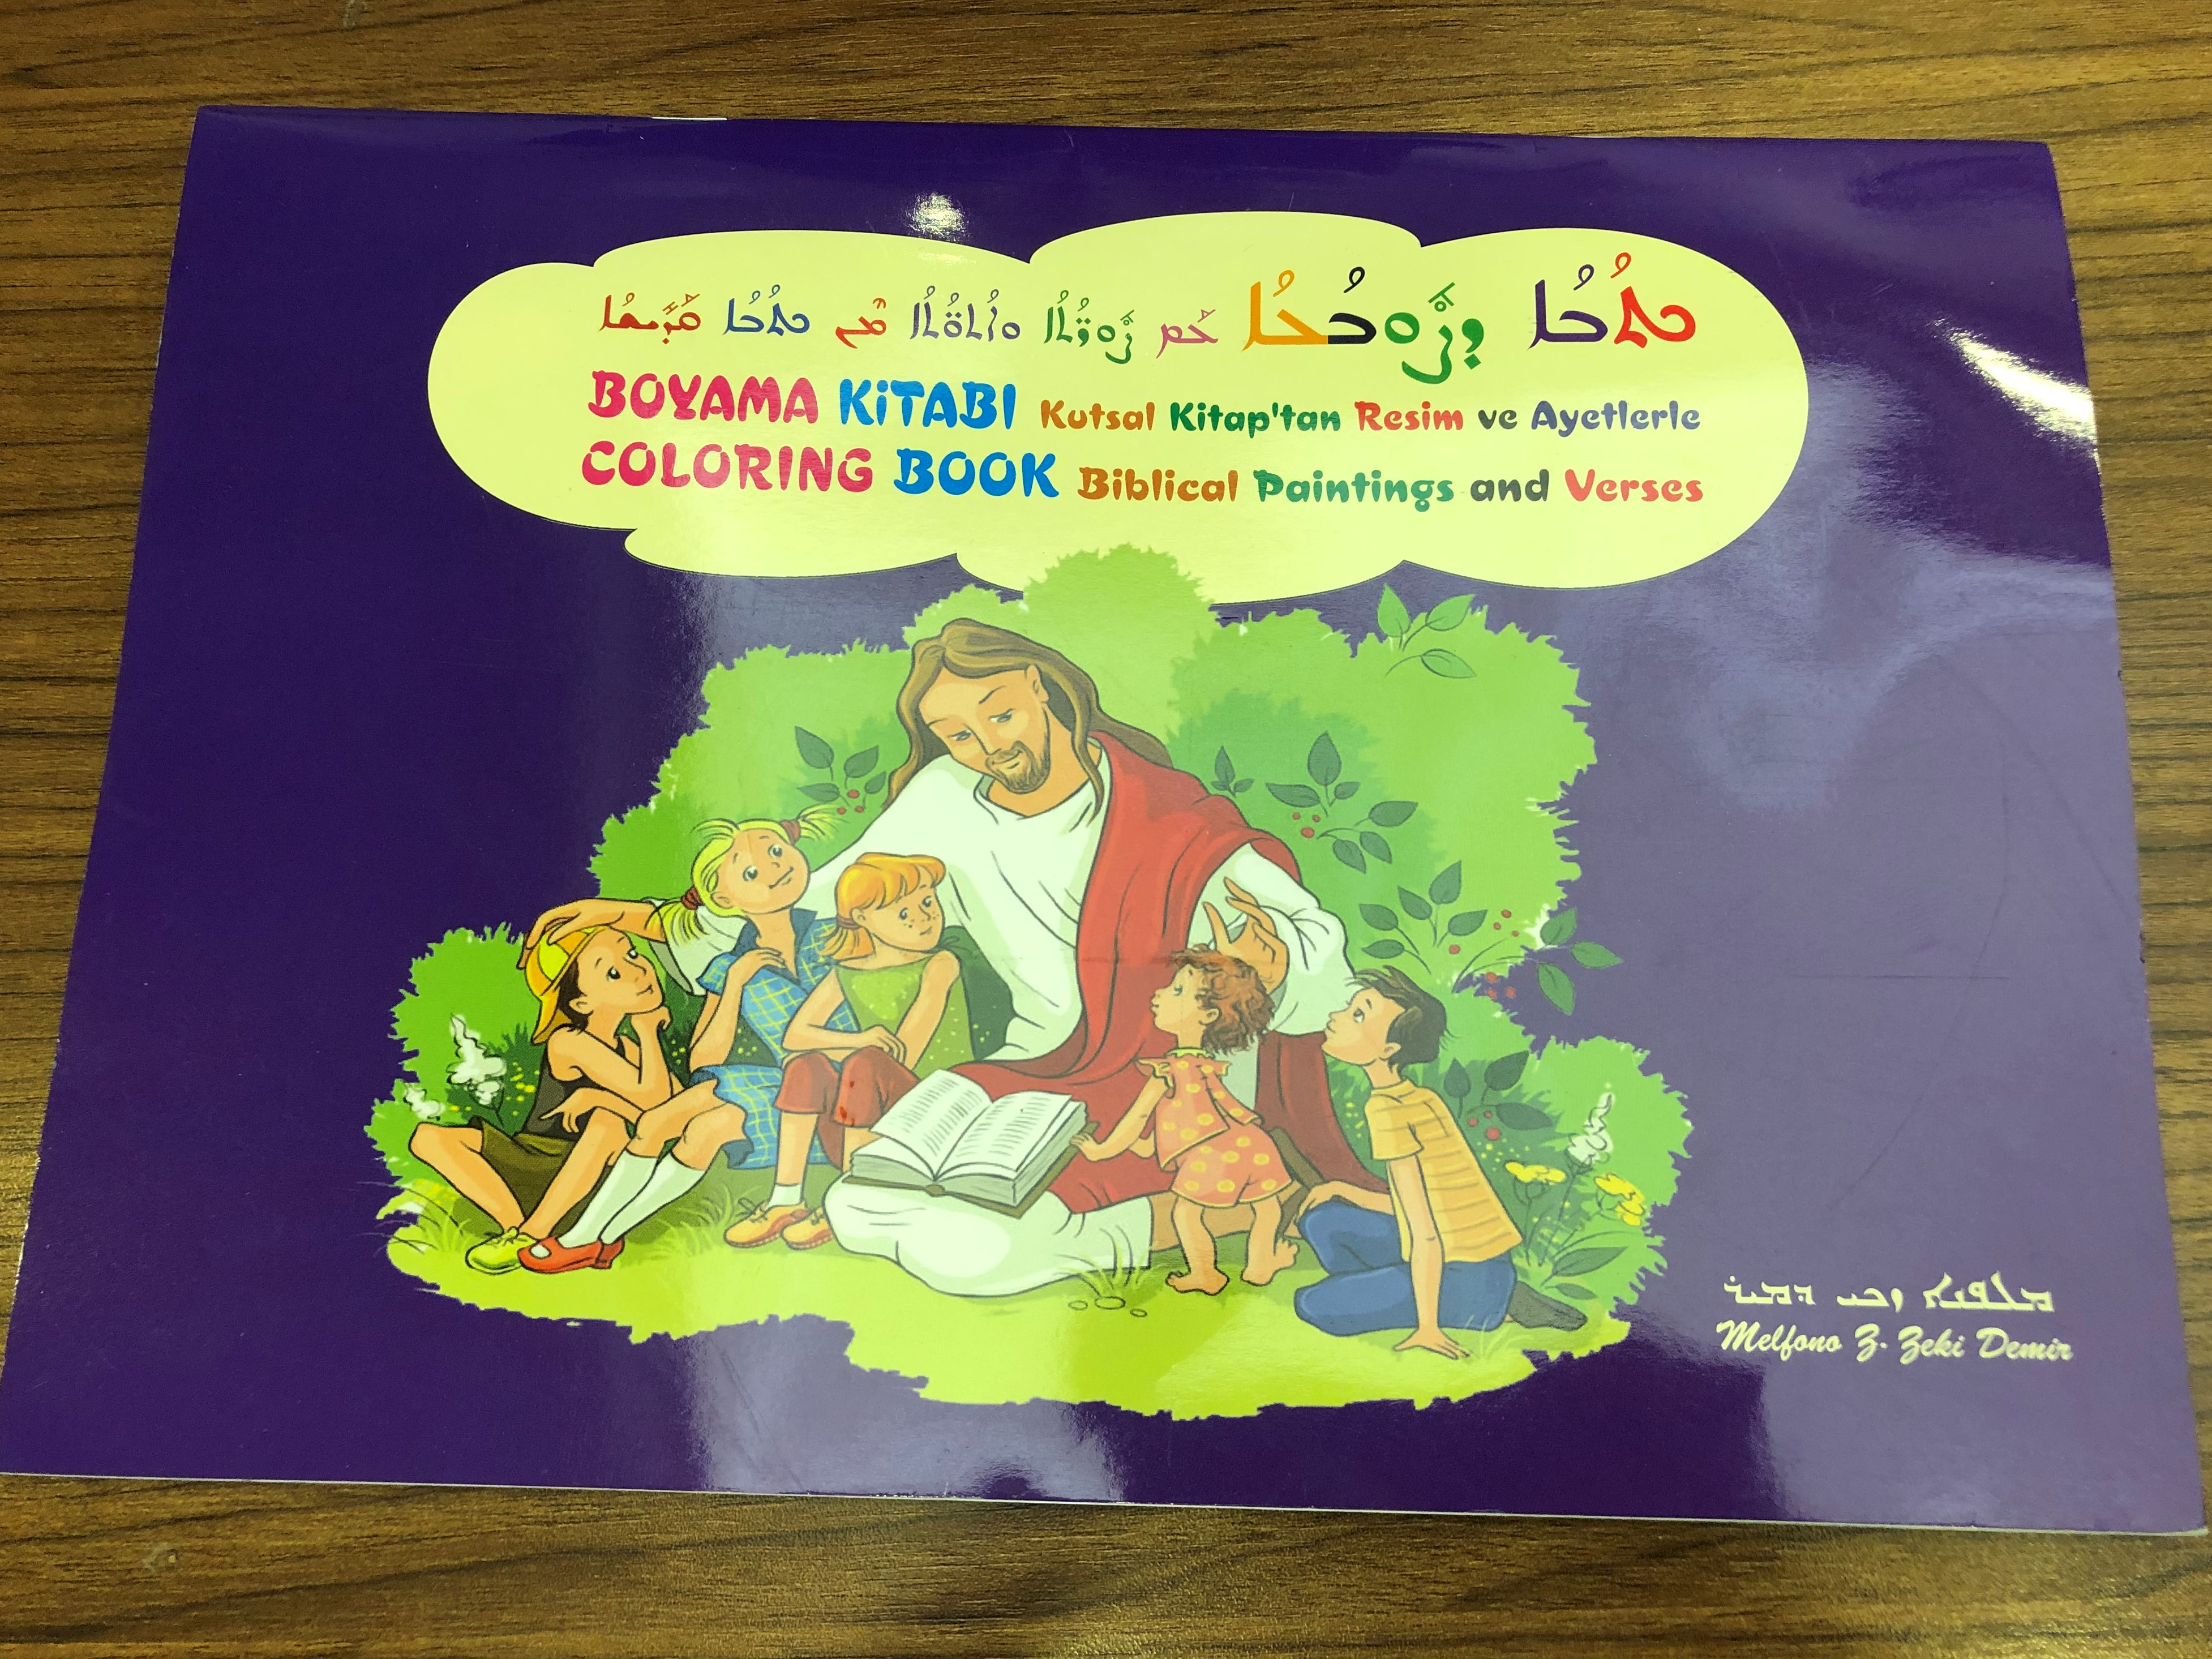 boyama-kitabi-kutsal-kitap-tan-resim-ve-ayetlerle-biblical-paintings-and-verses-coloring-book-kurdish-turkish-and-english-language-bible-coloring-book-1st-edition-paperback-2018-1-.jpg